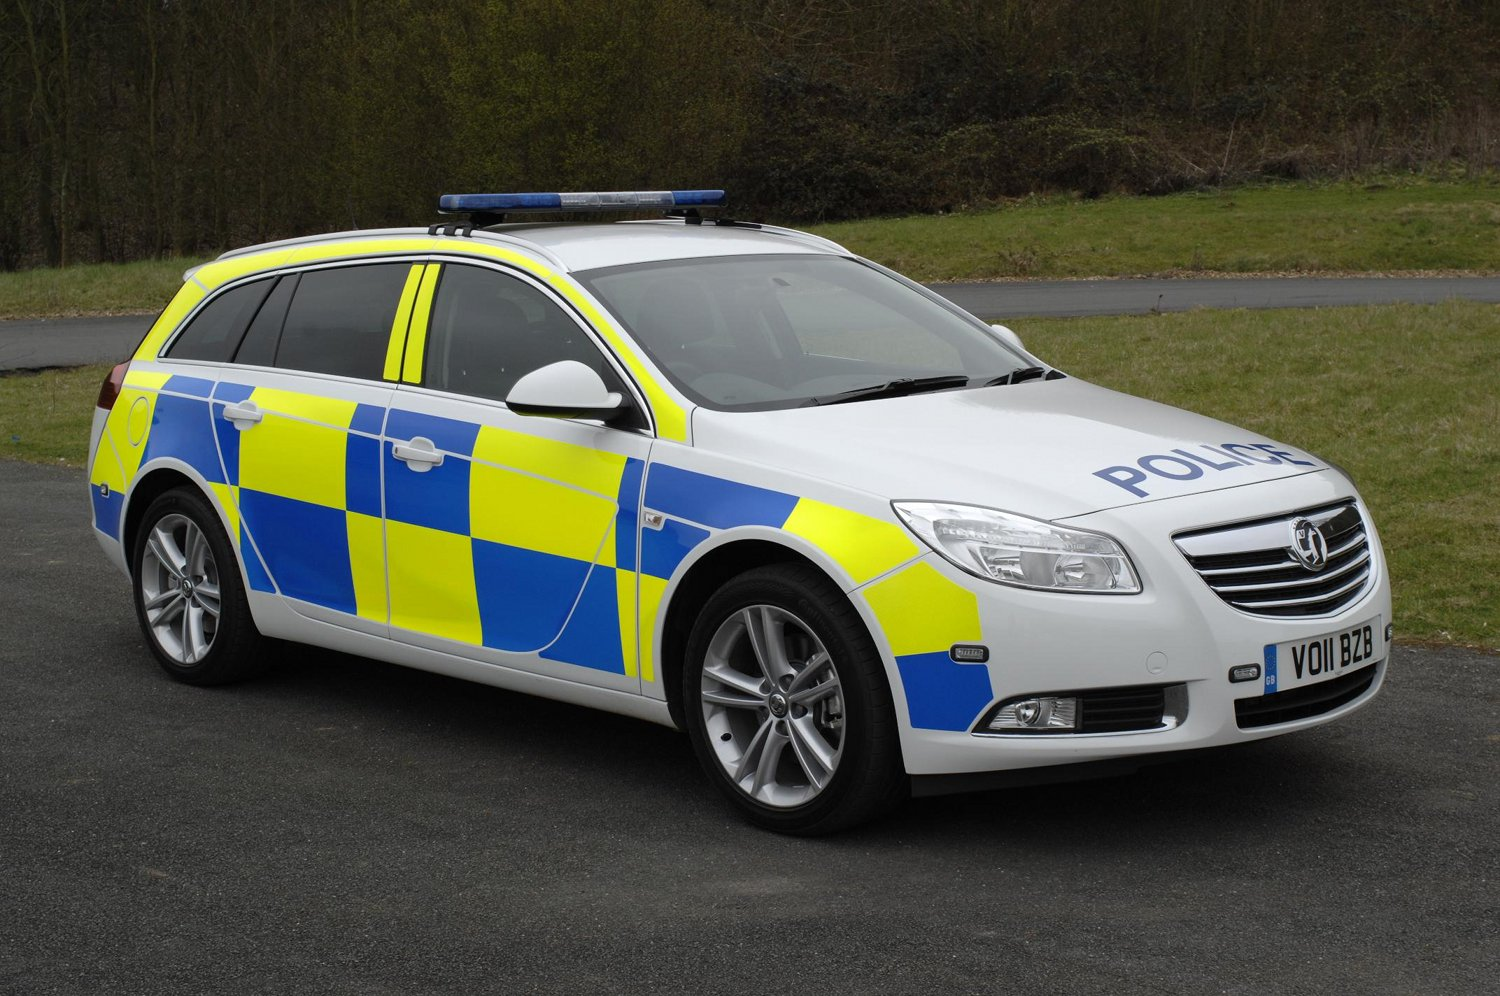 vauxhall insignia police car flexes its muscles for french. Black Bedroom Furniture Sets. Home Design Ideas